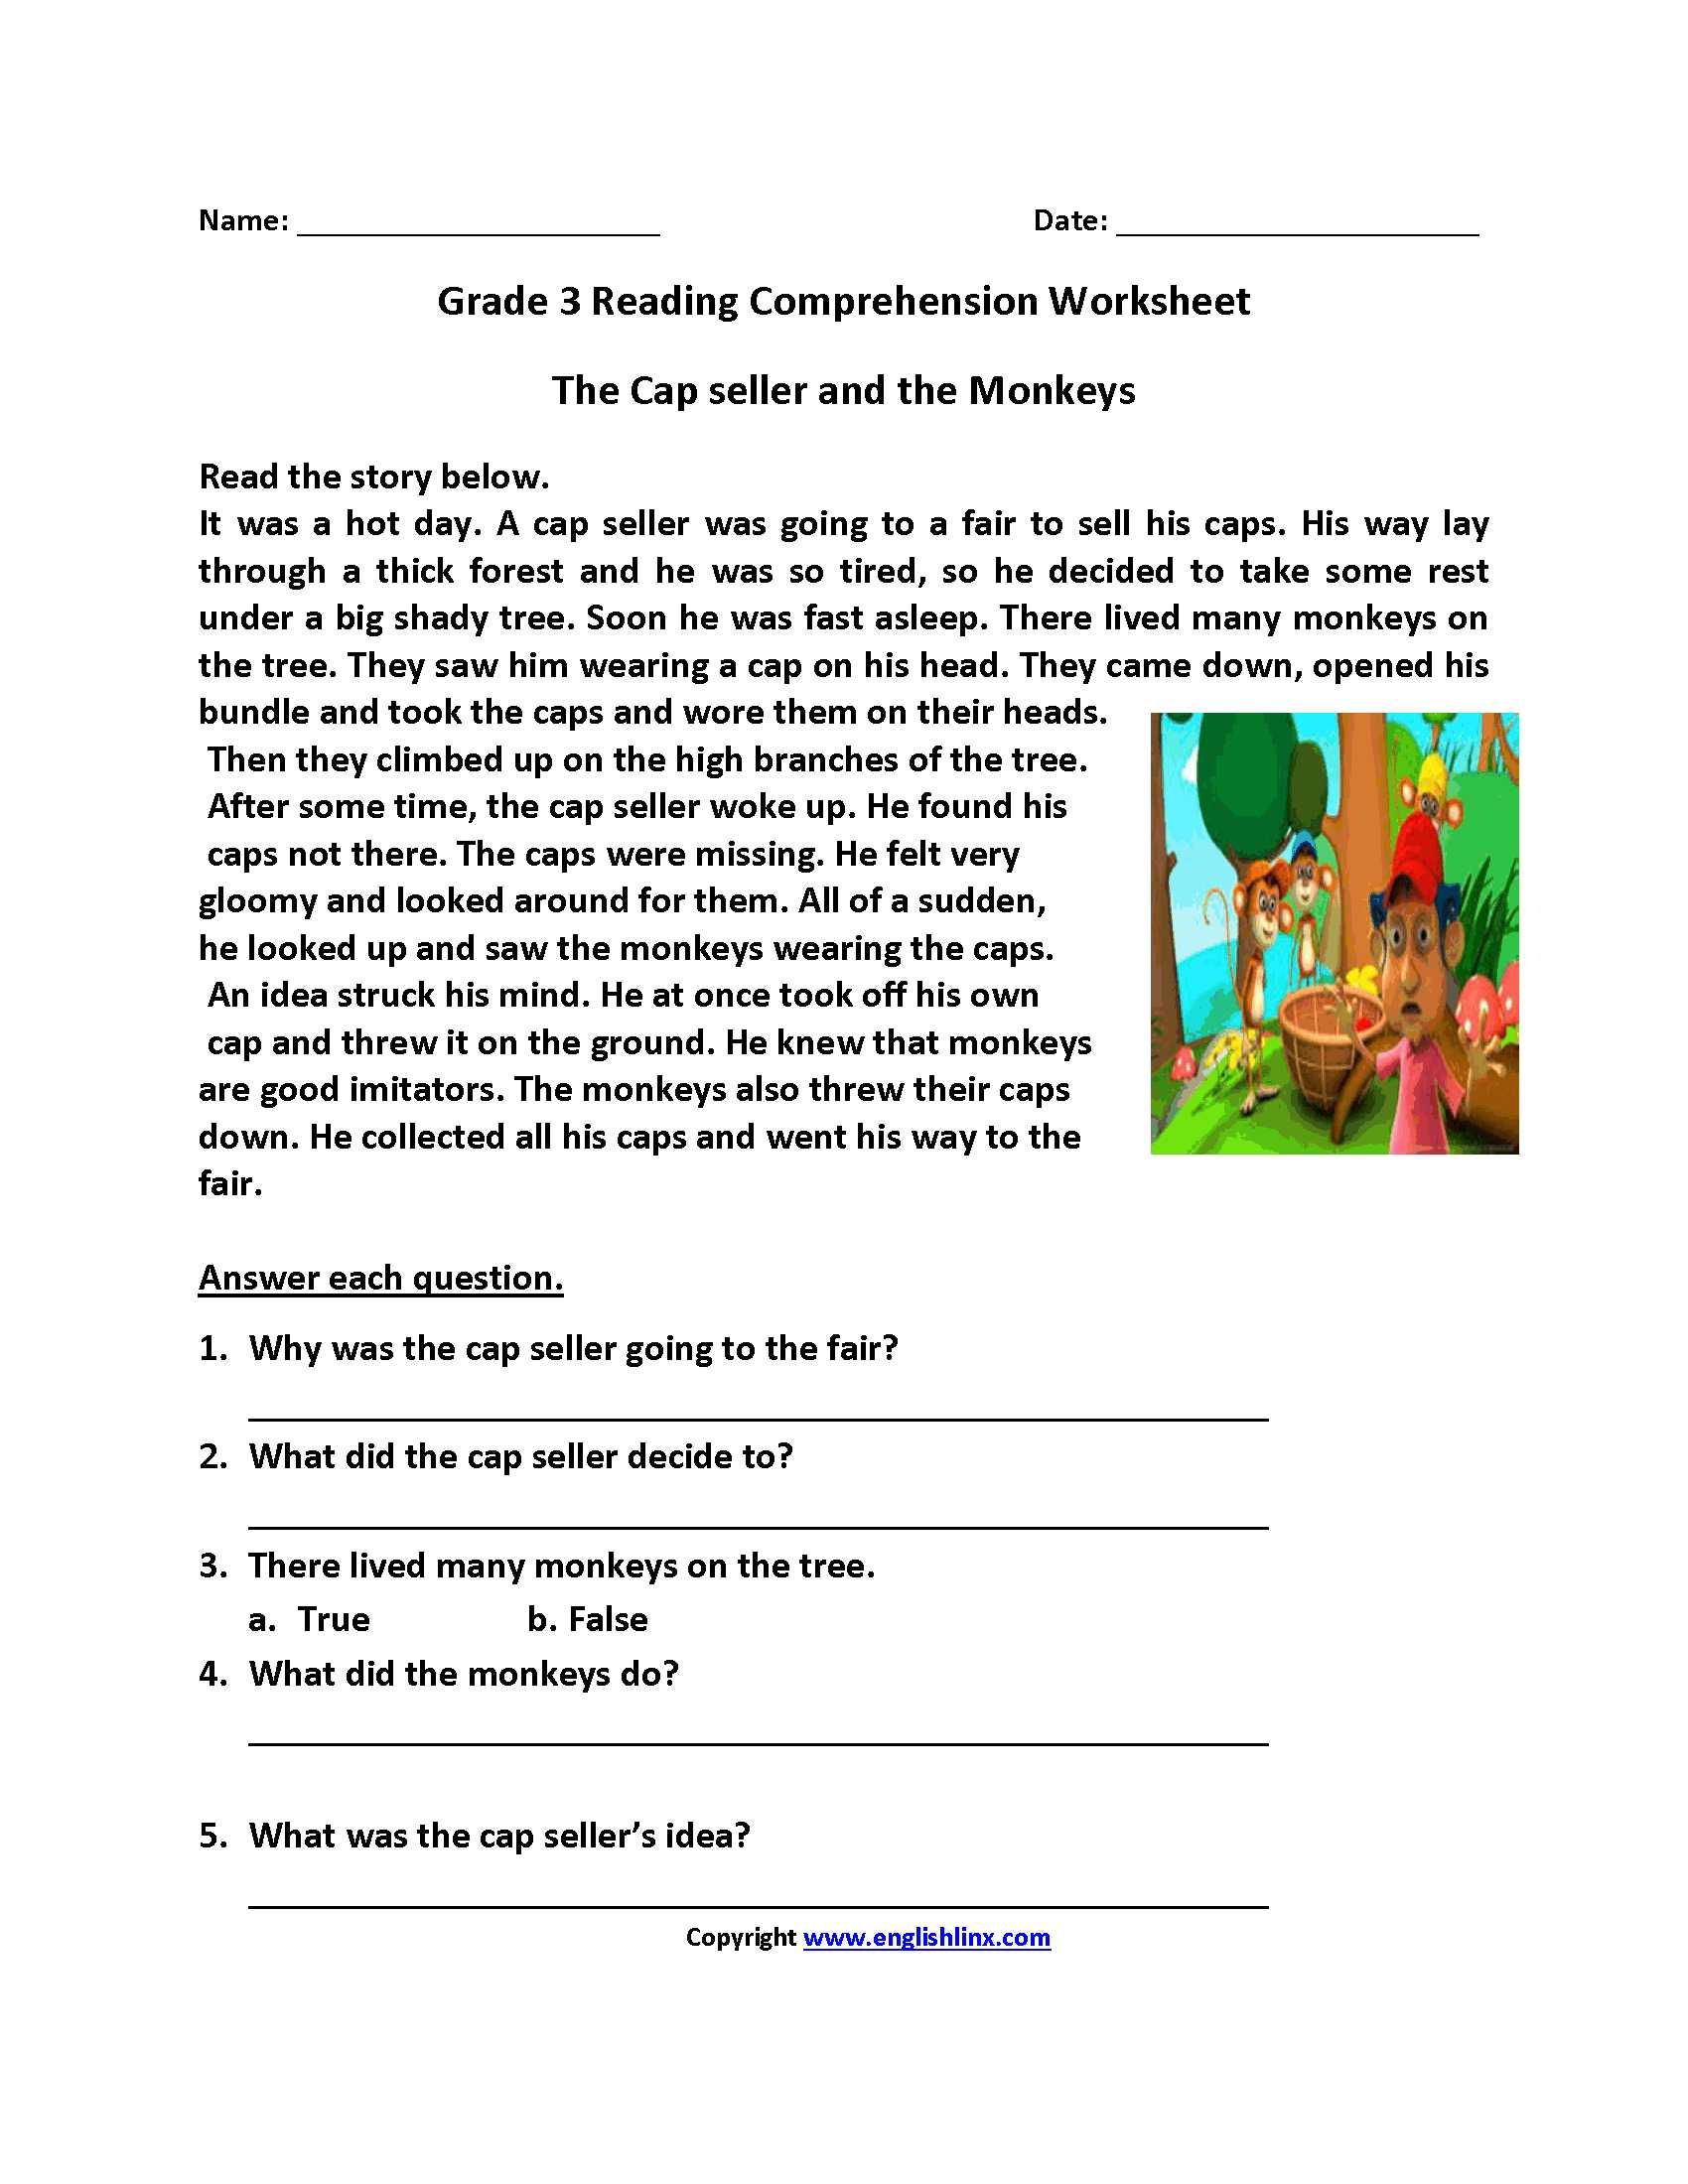 4th Grade Reading Comprehension Worksheets Multiple Choice as Well as Cap Seller and Monkeys Third Grade Reading Worksheets